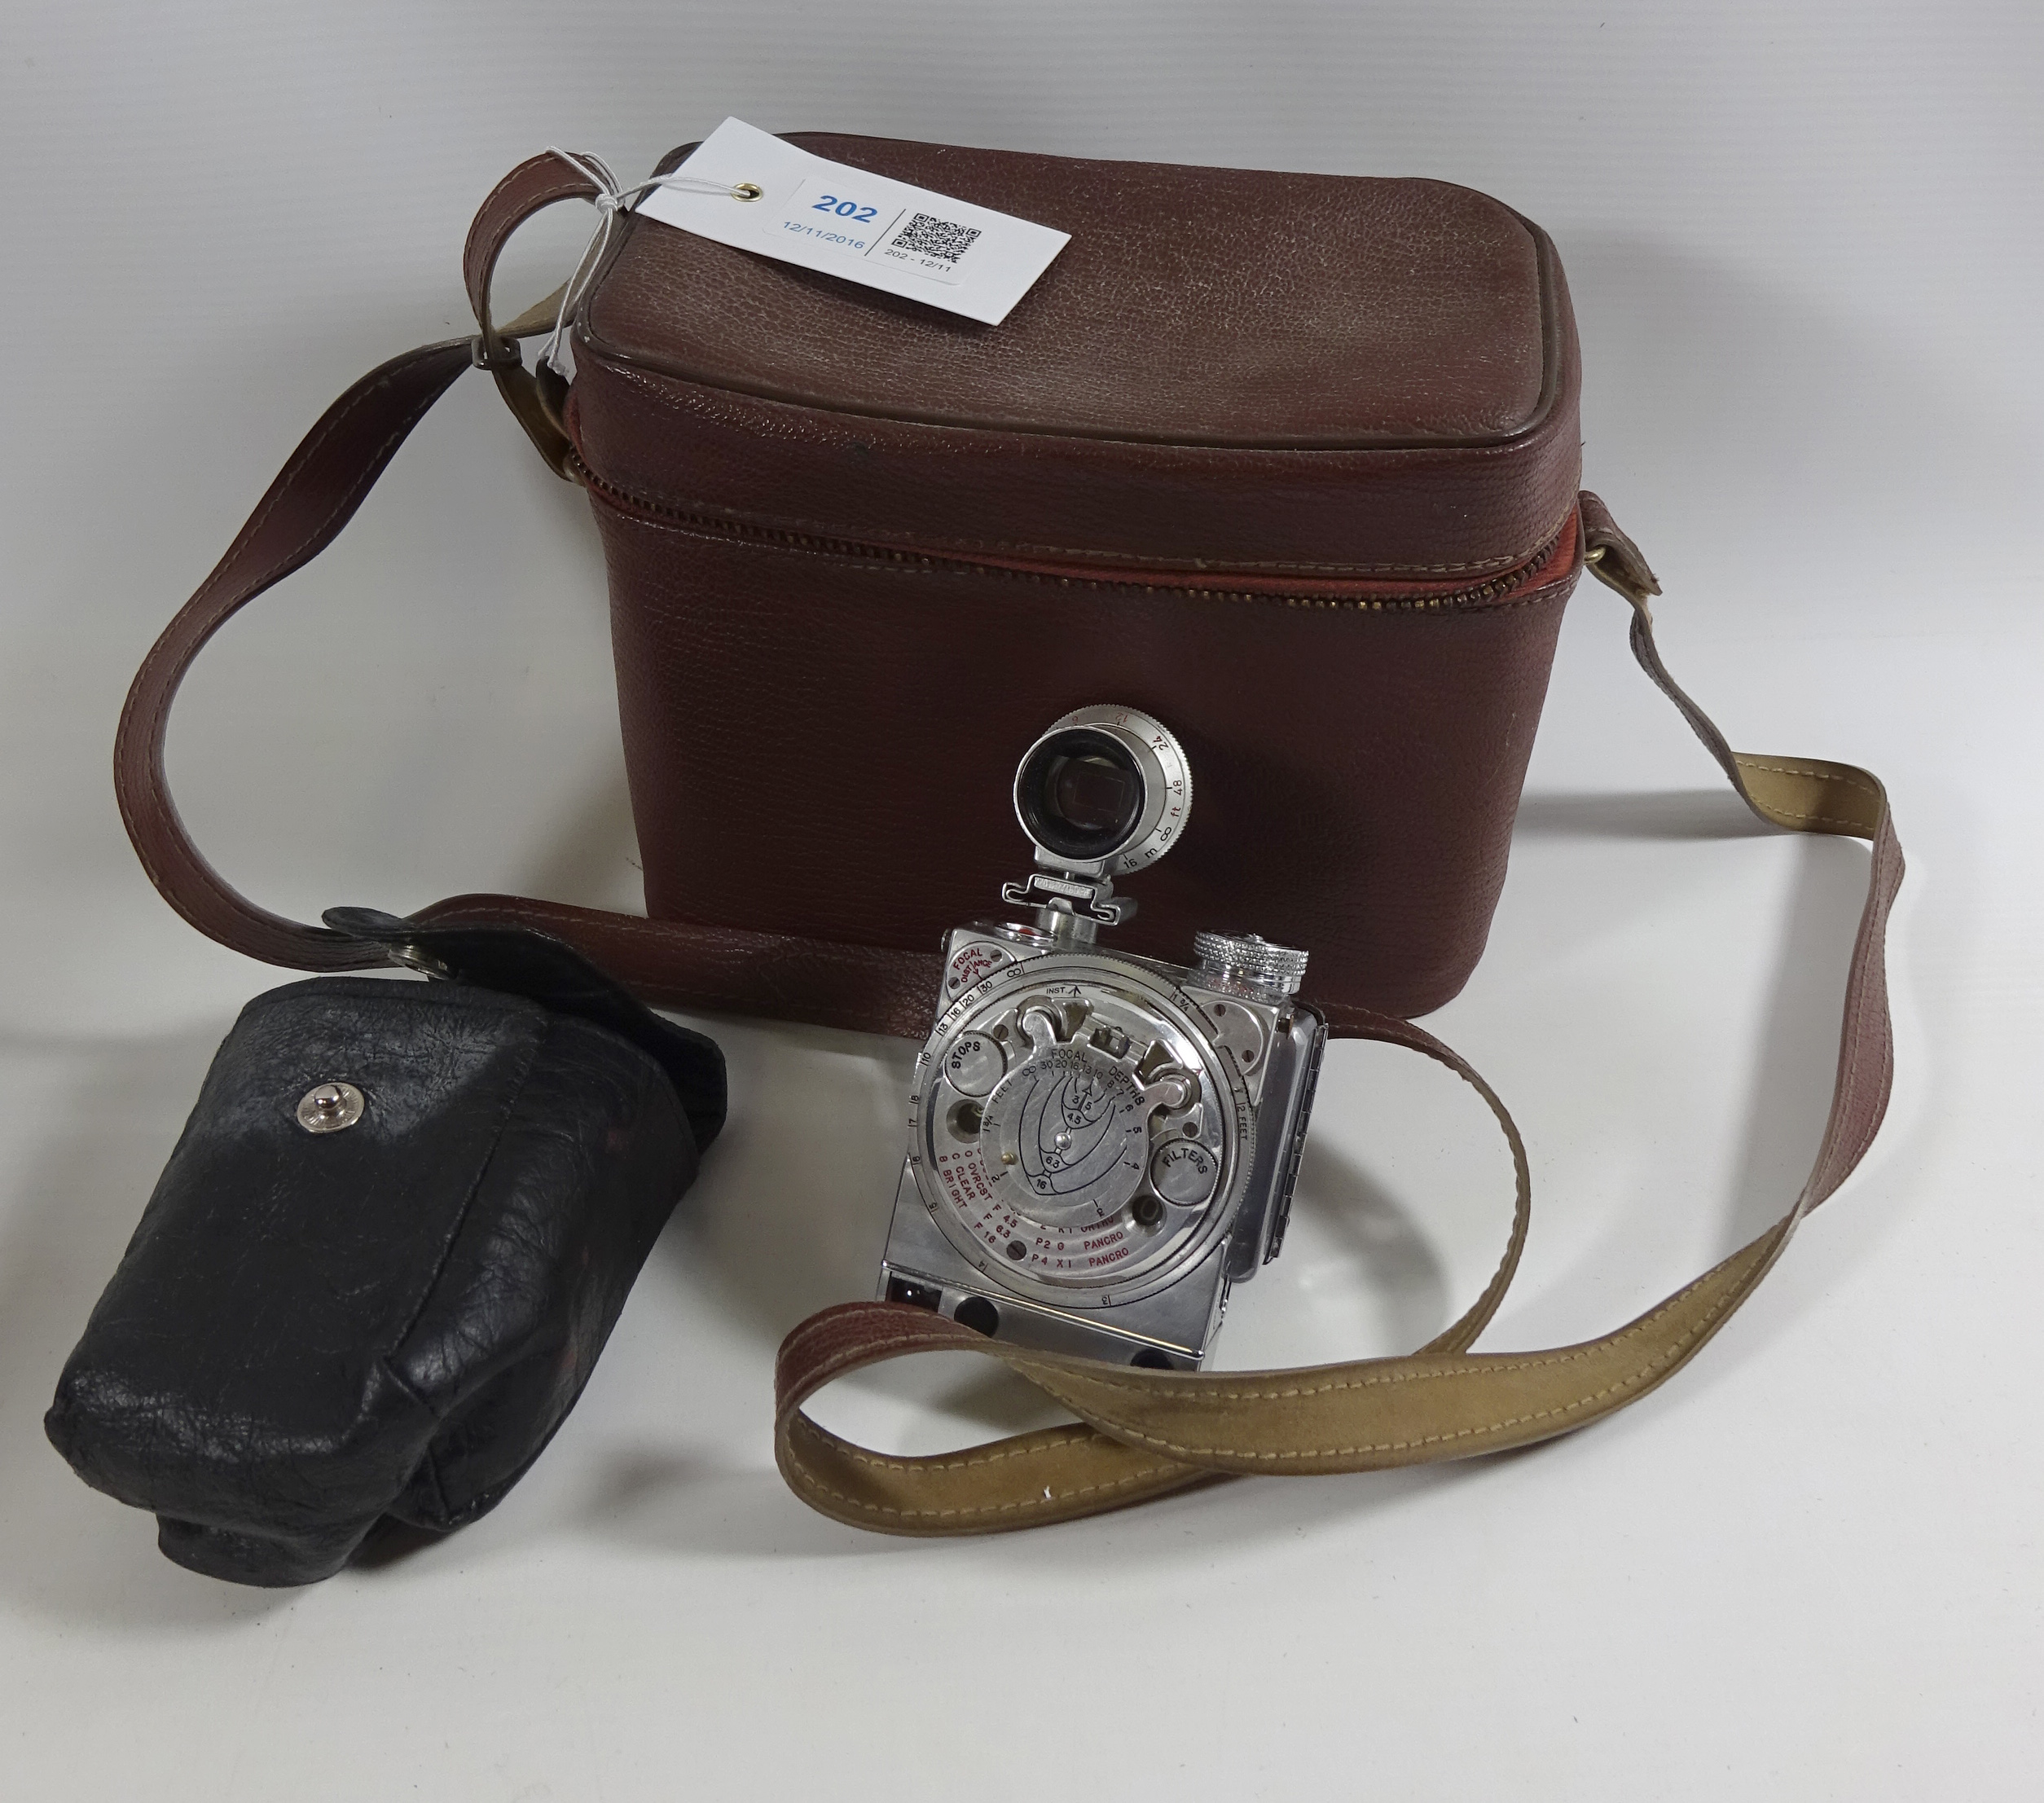 Camera sold for £1,800